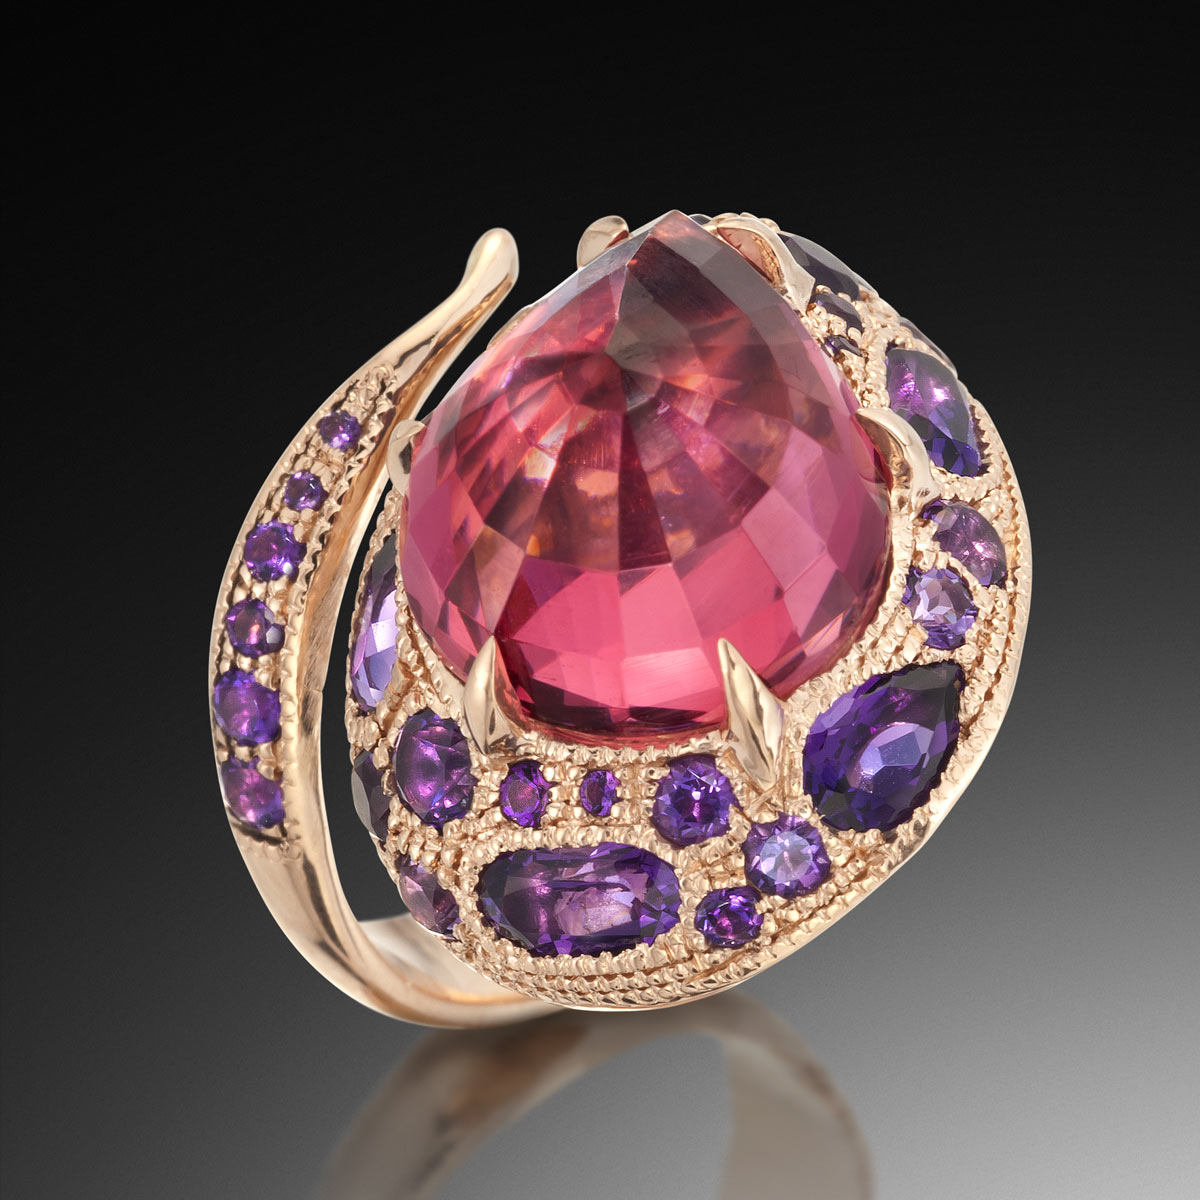 Rose Rubellite Tourmaline Ring